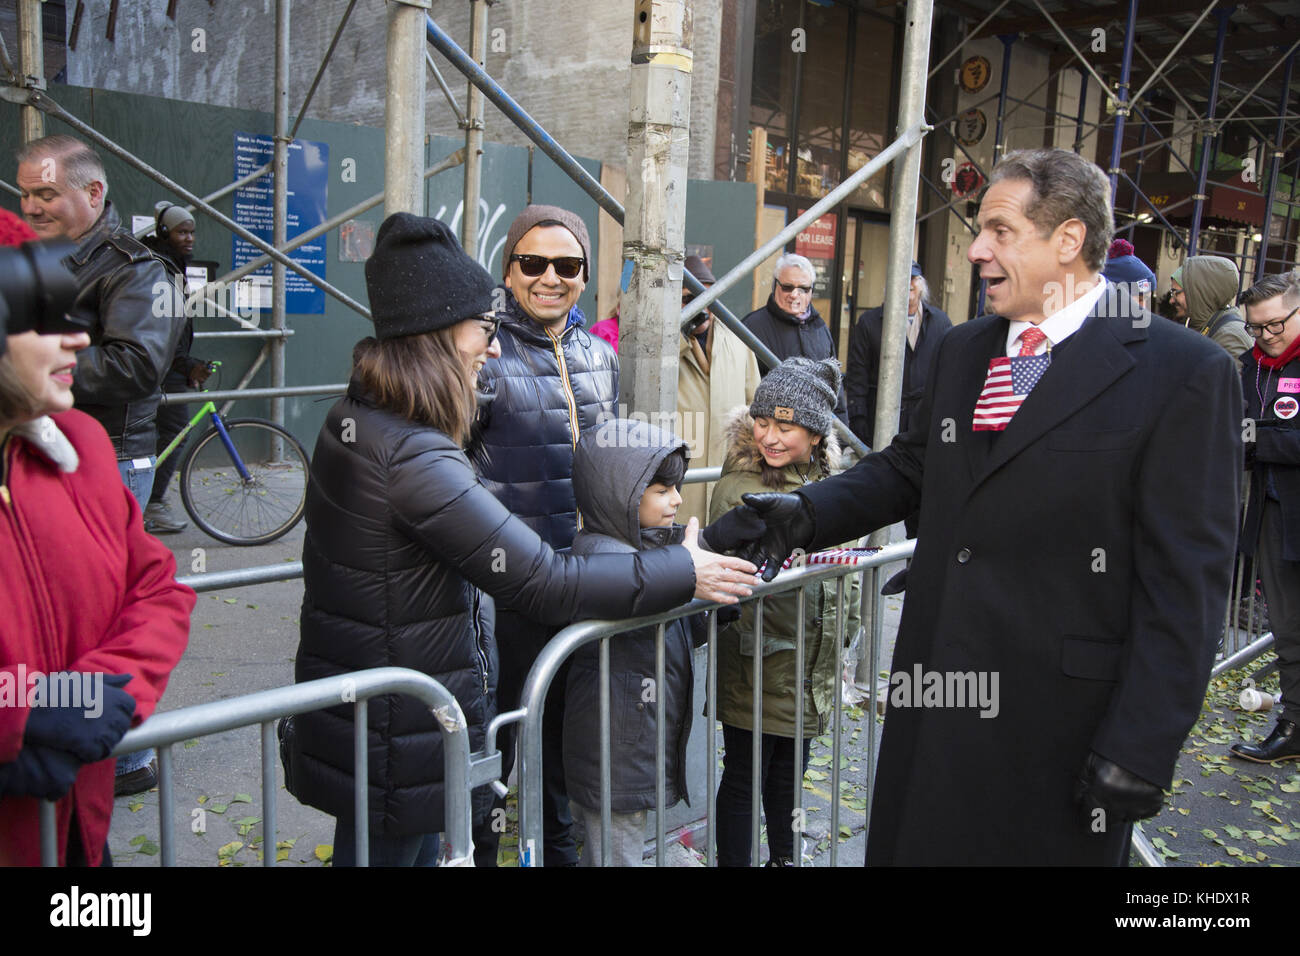 New York State Governer Andrew Cuomo greets spectators as he marches up 5th Avenue in the Verterans Day Parade in - Stock Image